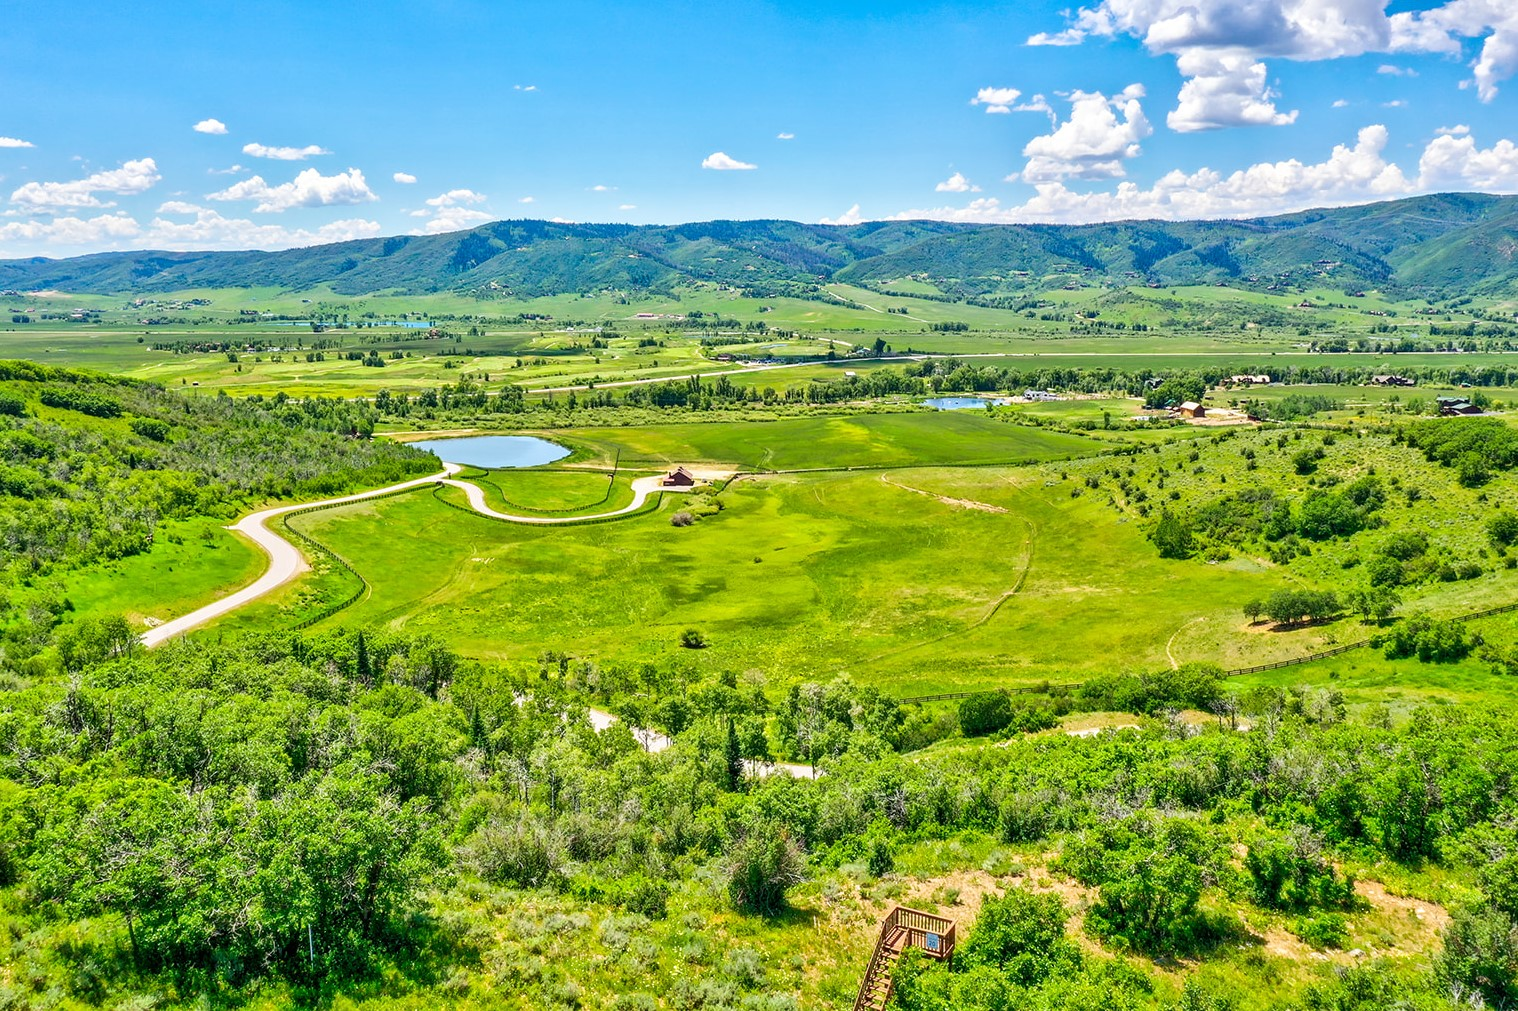 Alpine Mountain Ranch Club June 2020 Lot 18 Daylight Drone Aerial 35 websize - Construction Booms at Luxury Rural Ranch